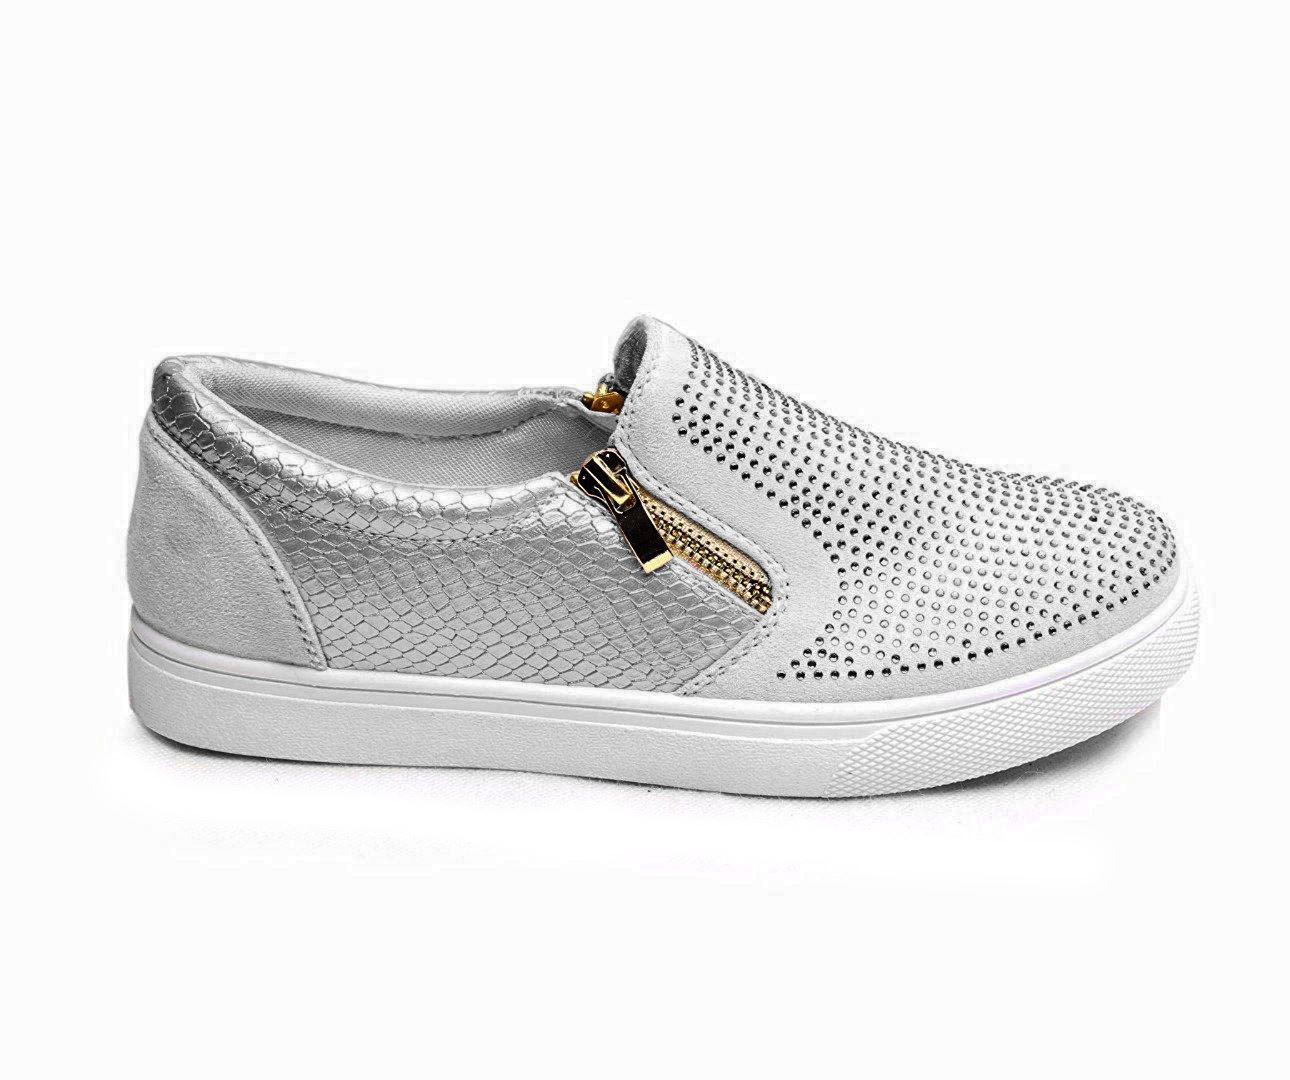 New-Womens-Diamante-Zip-Trainers-Slip-On-Skater-